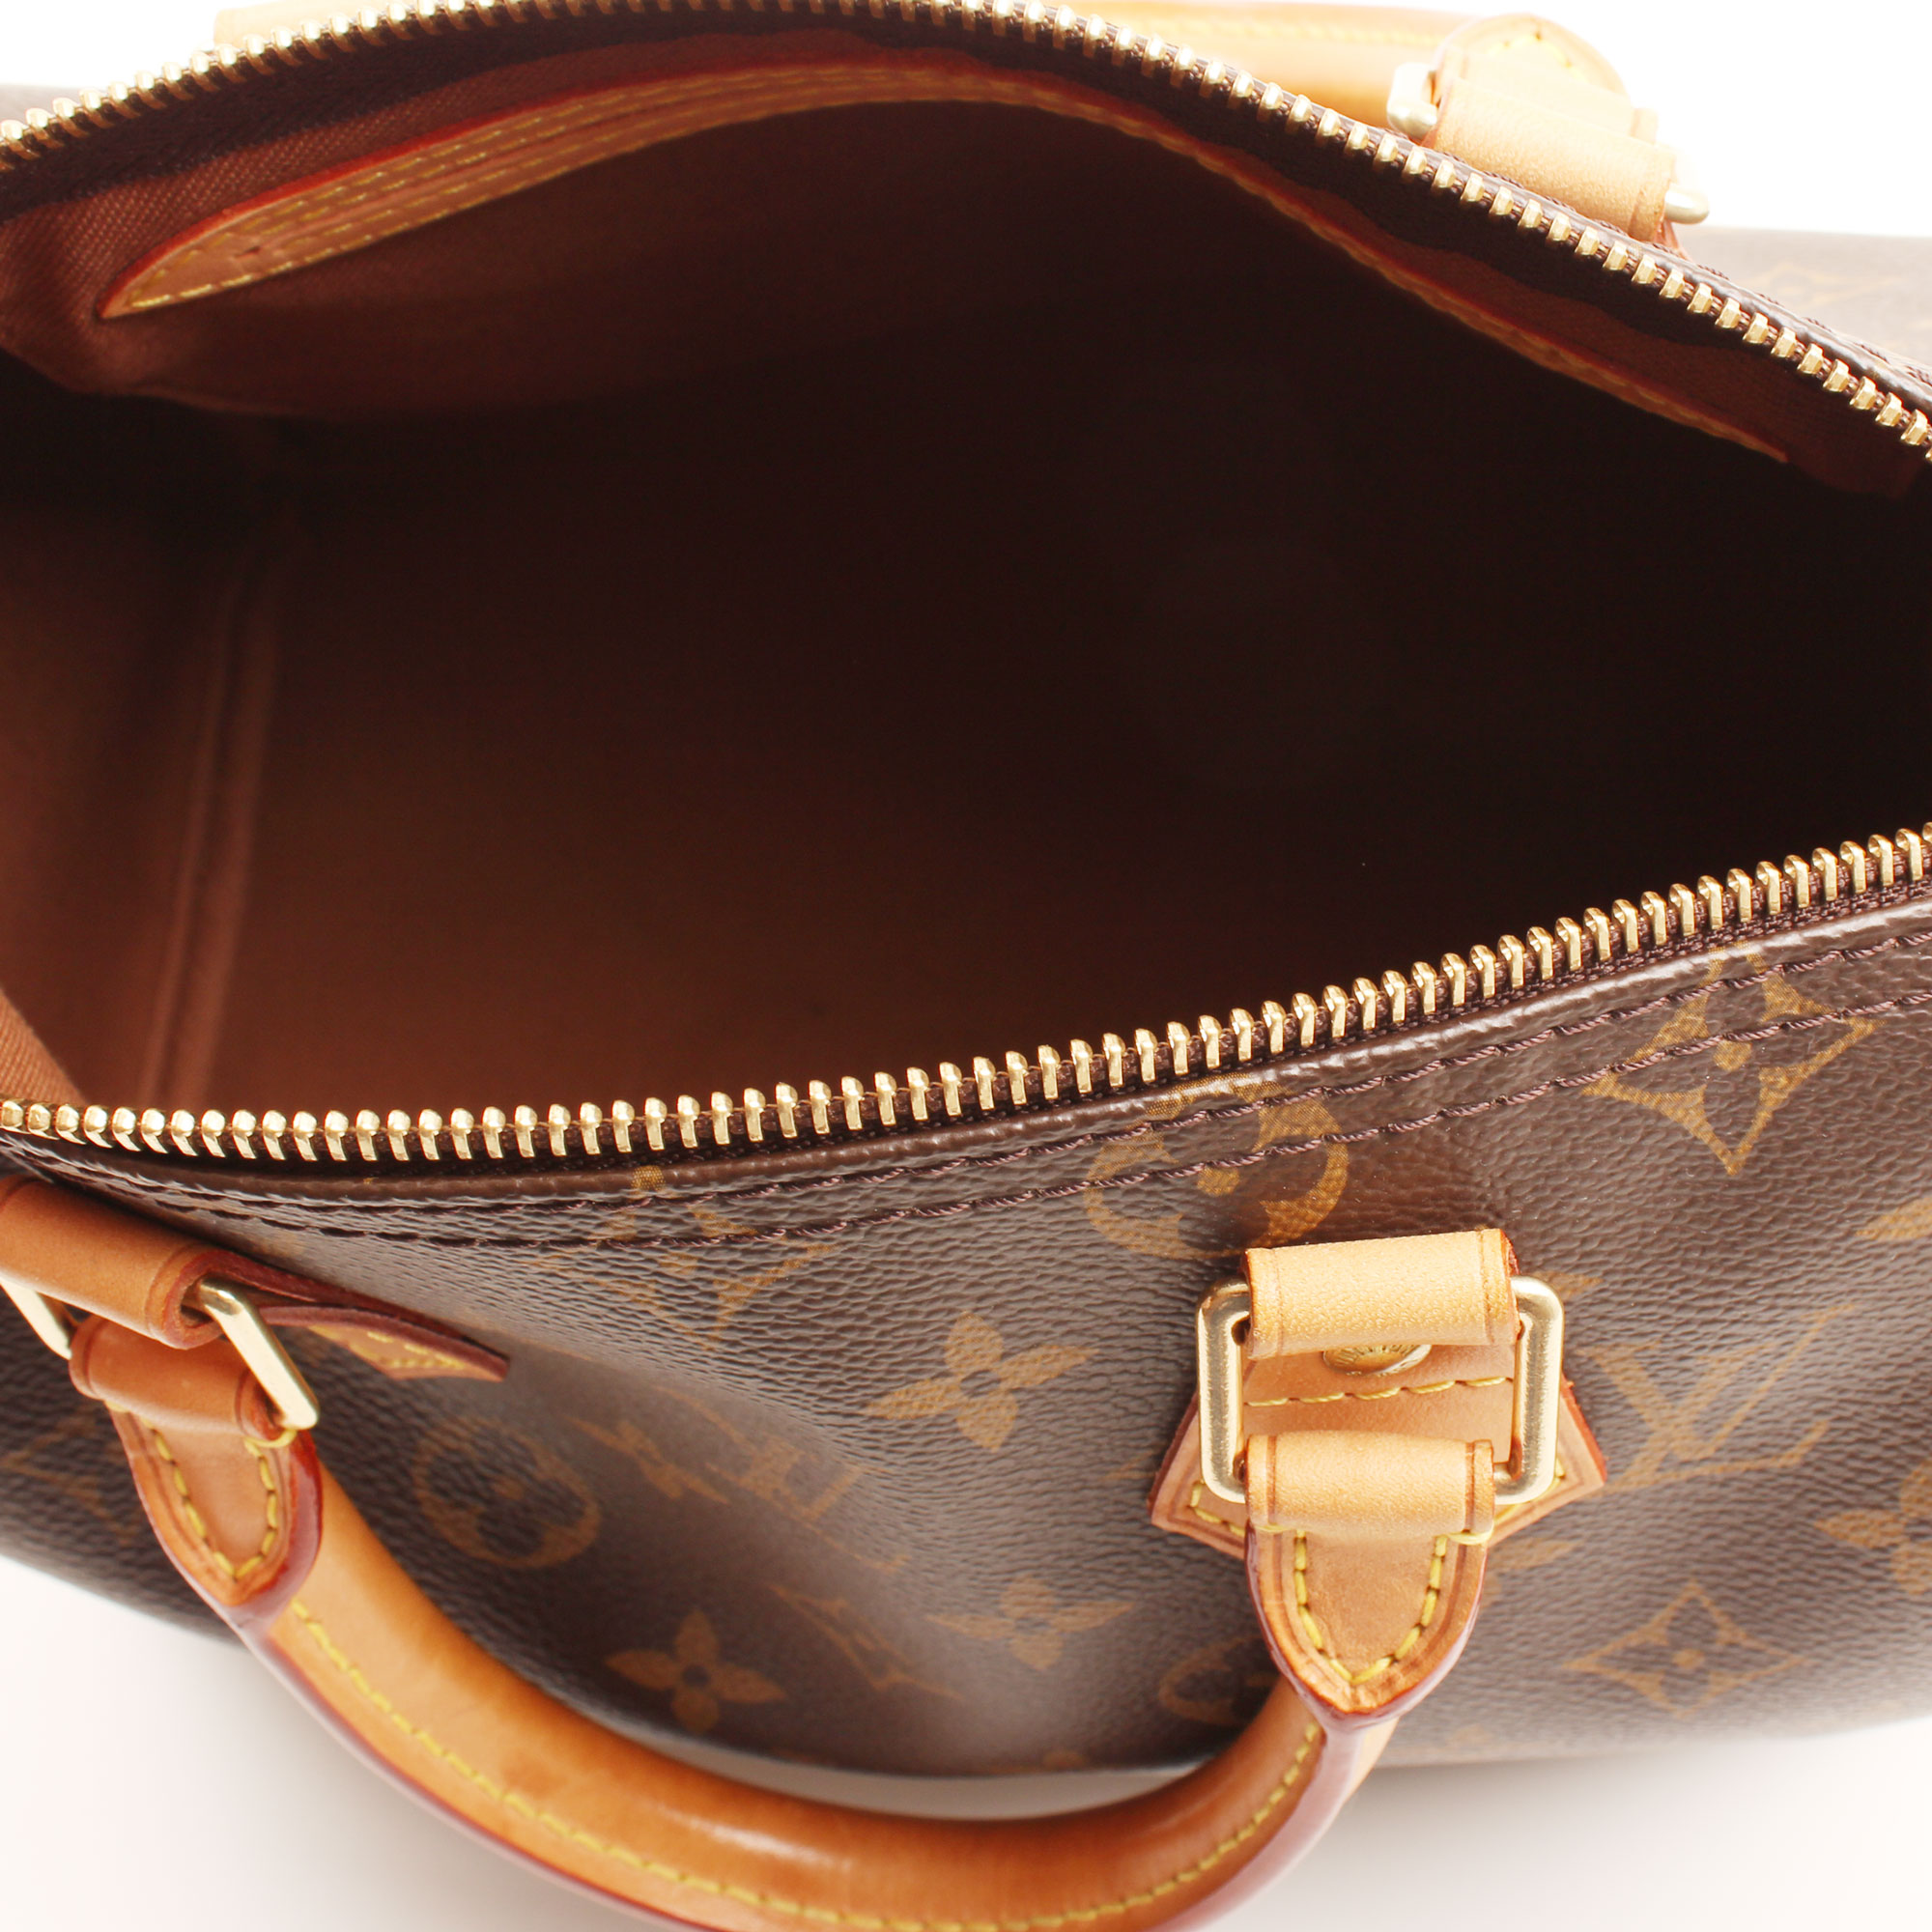 Imagen del interior del bolso louis vuitton speedy 25 monogram